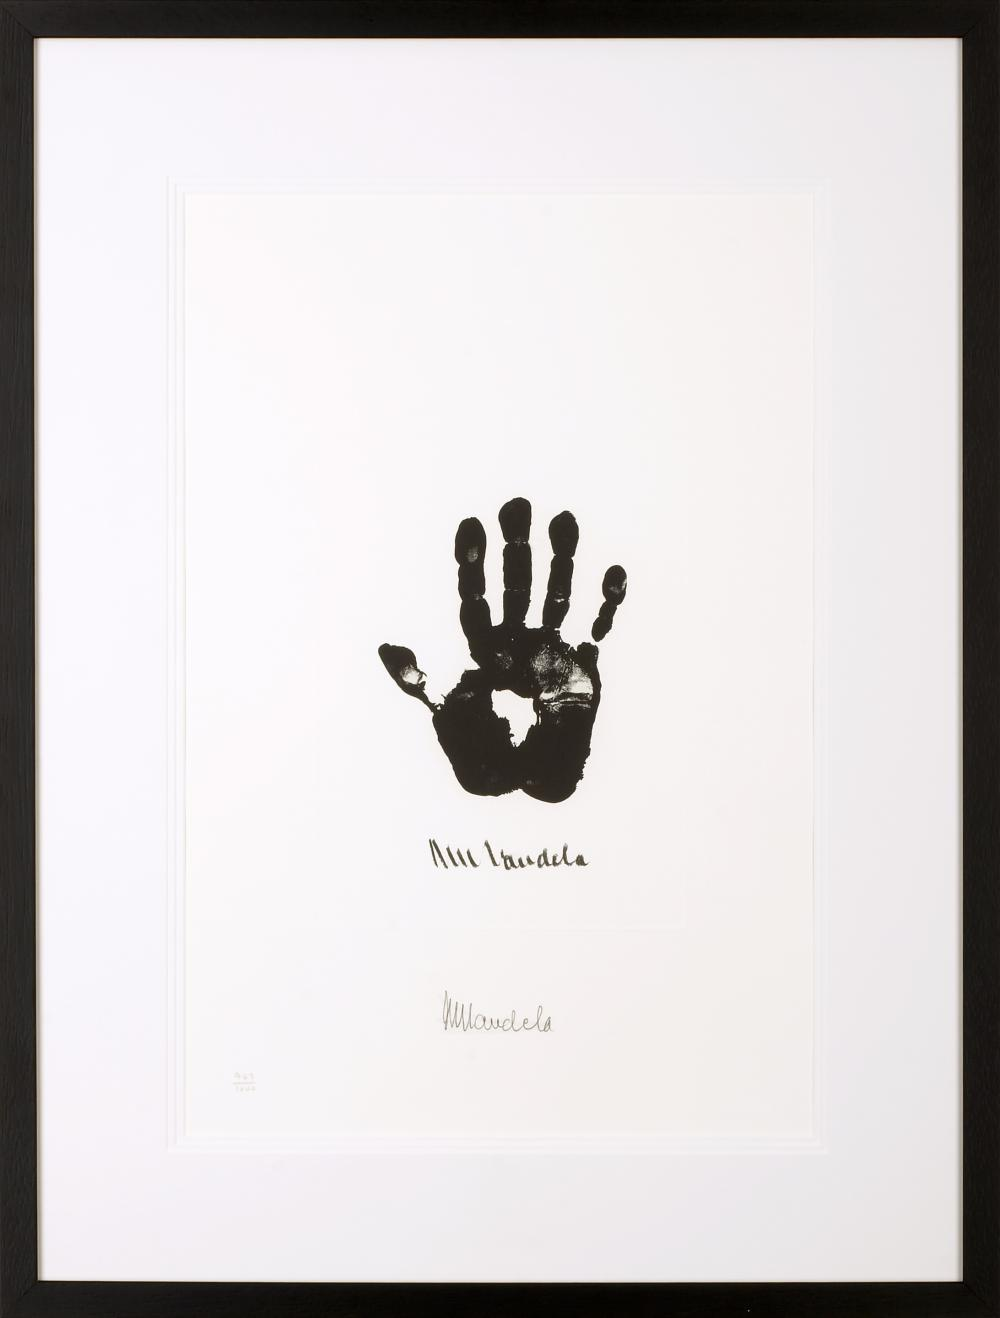 Hand of Africa (c) Nelson Mandela, Limited edition signed lithograph, 25.5 x 21.5""